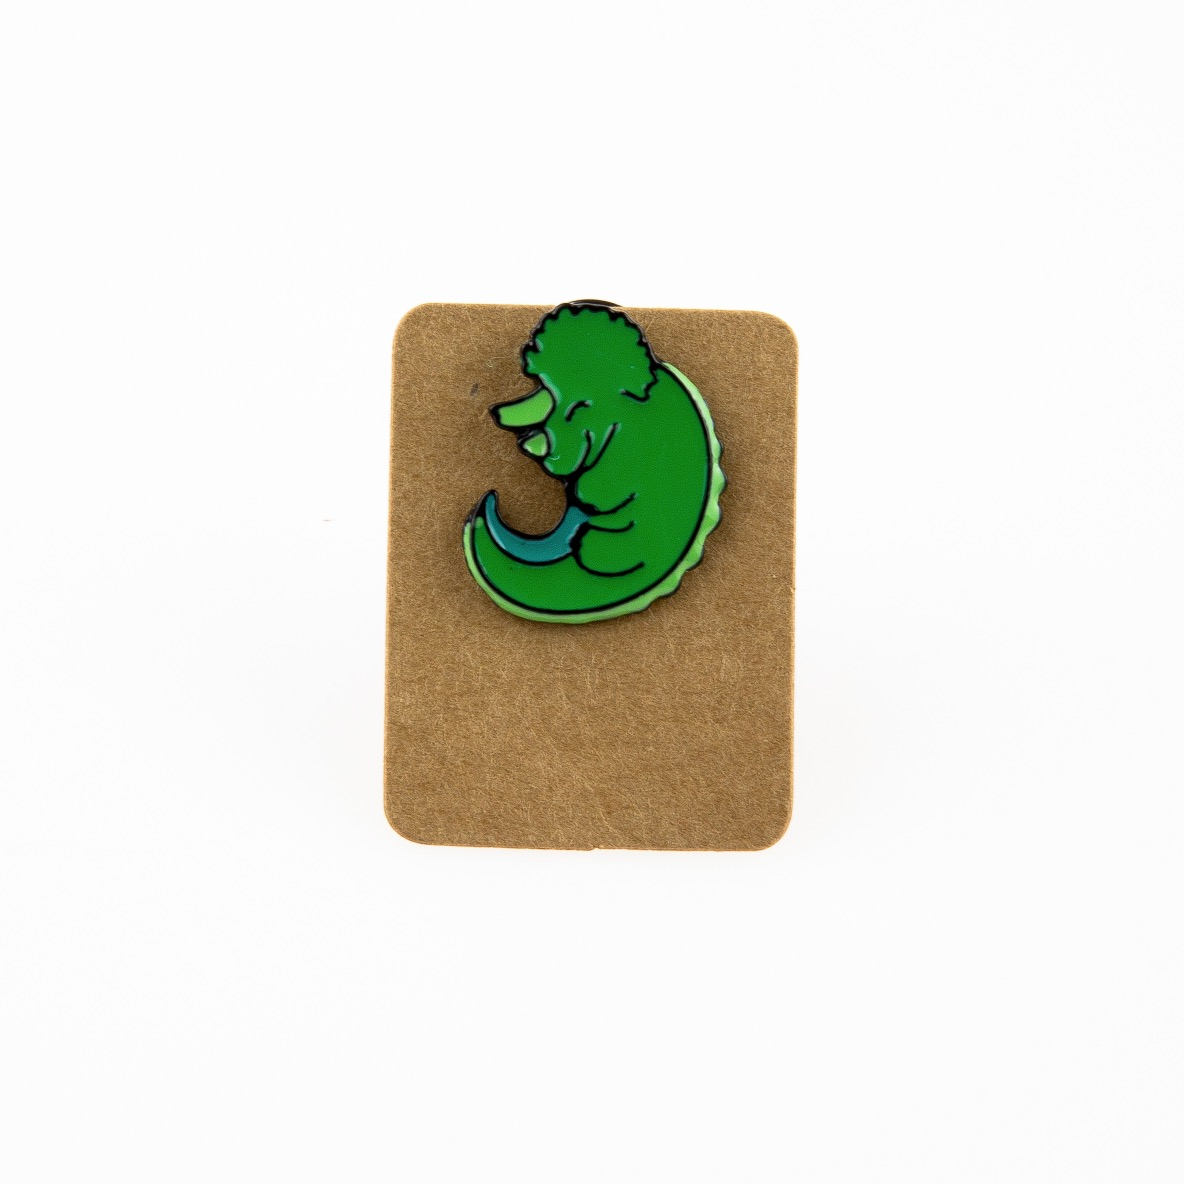 Metal Baby Triceratops Dino Enamel Pin Badge